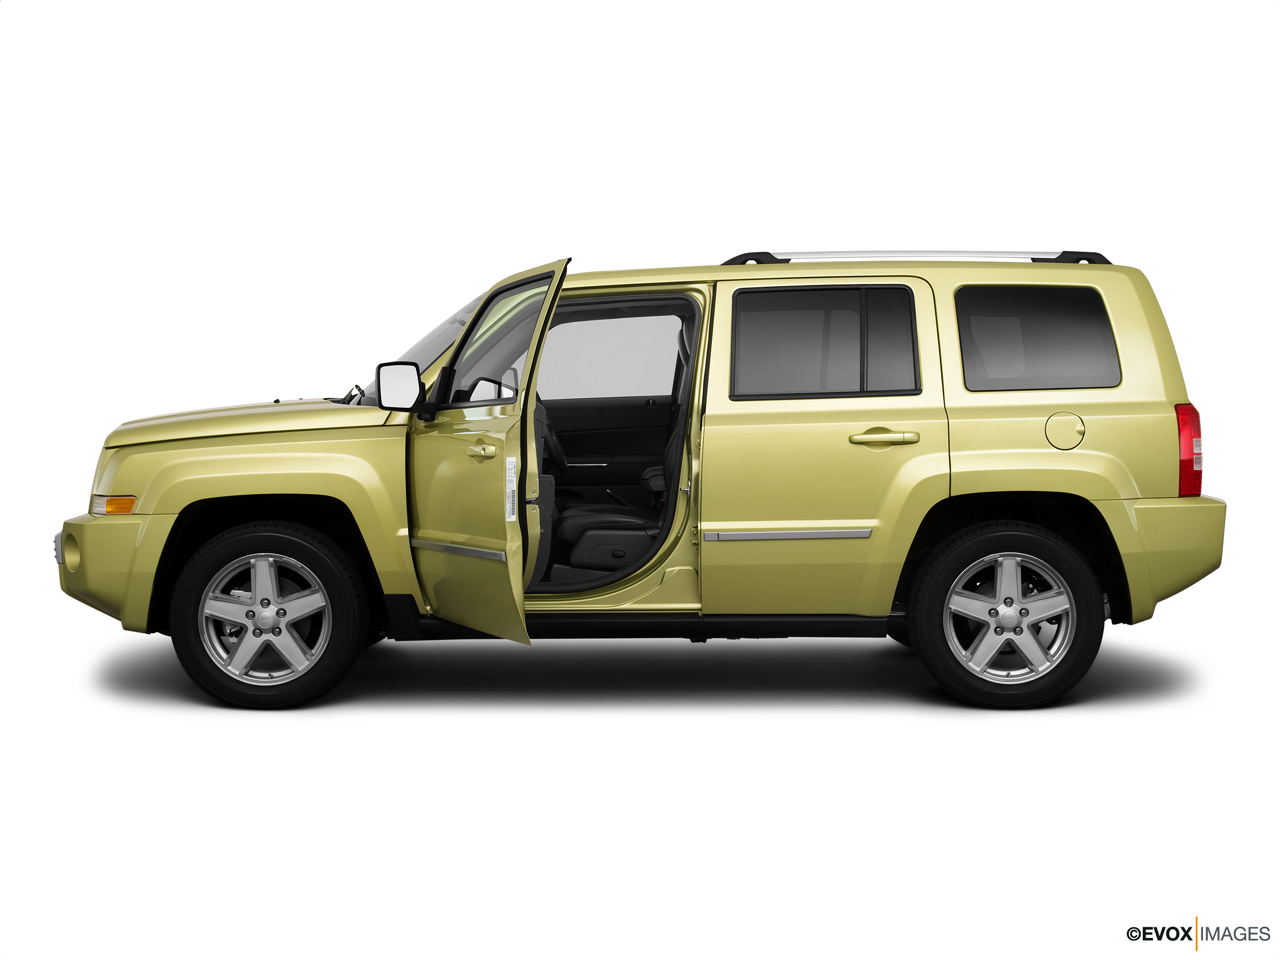 2010 Jeep Patriot Limited Driver's side profile with drivers side door open.